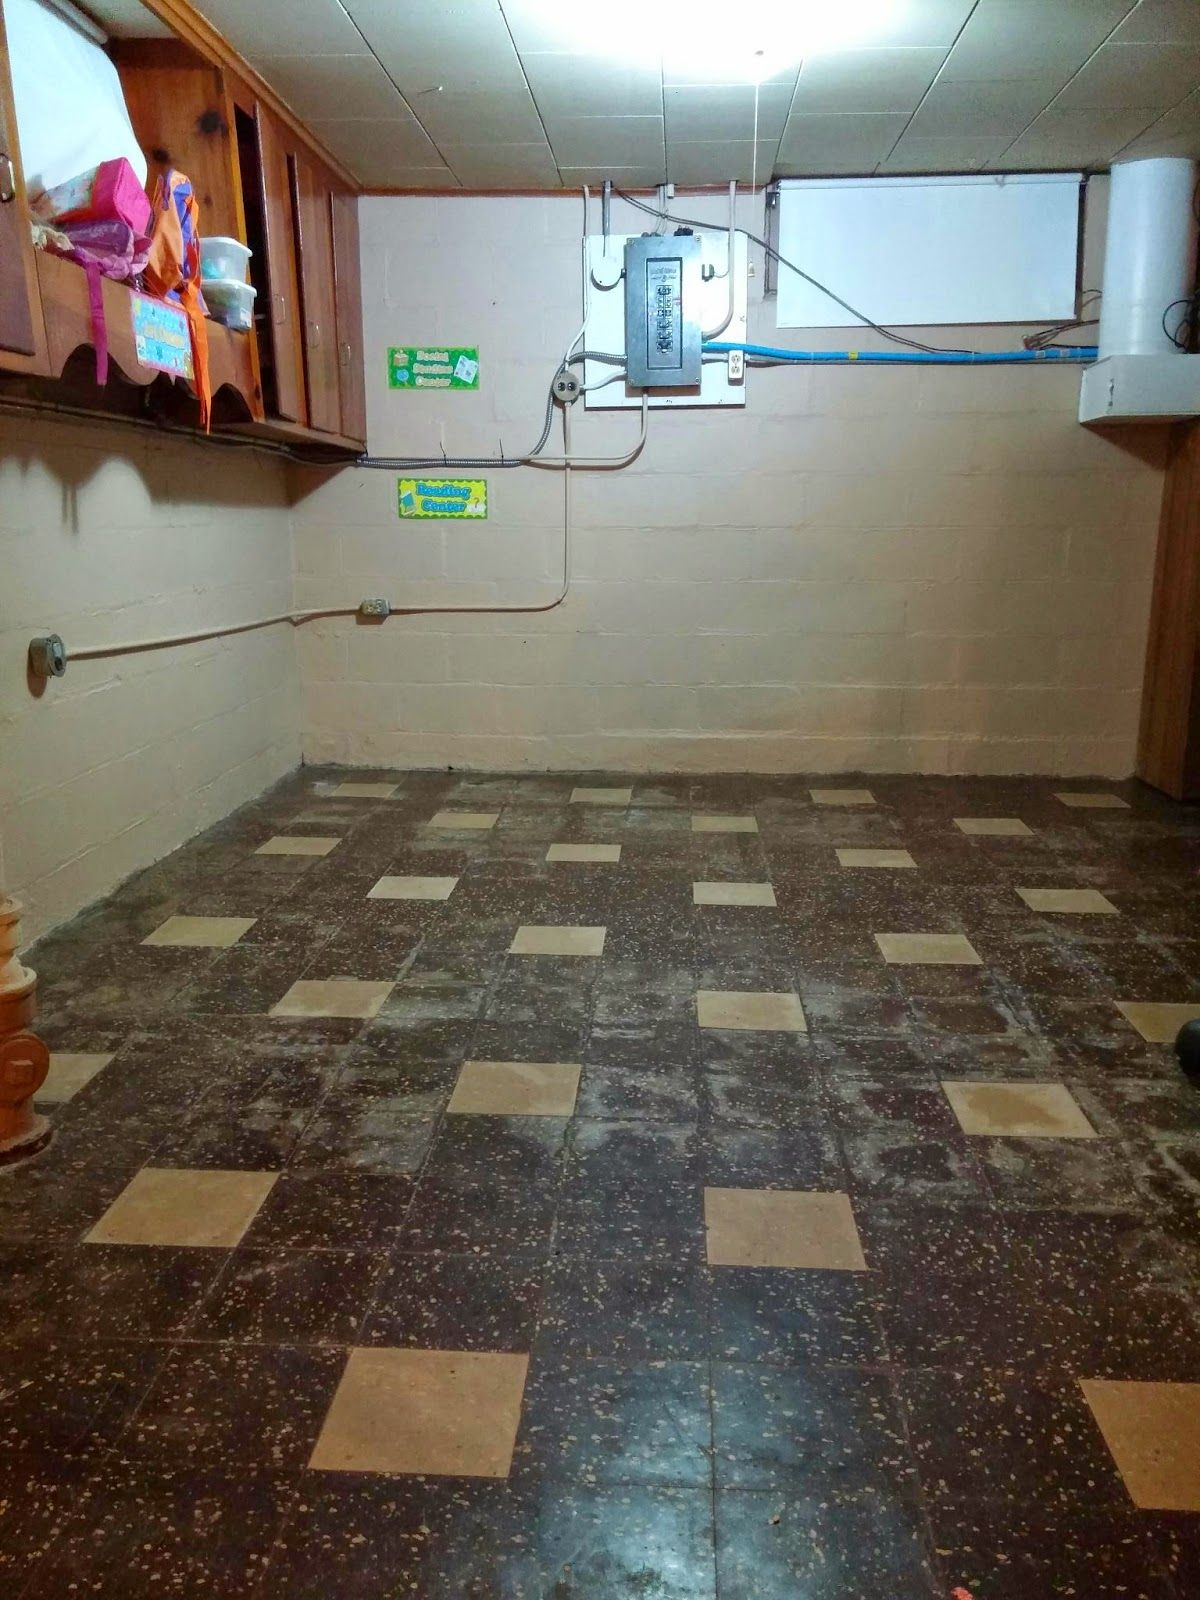 When we moved into our home one of the first things we noticed oh my baby painting asbestos tile dailygadgetfo Choice Image